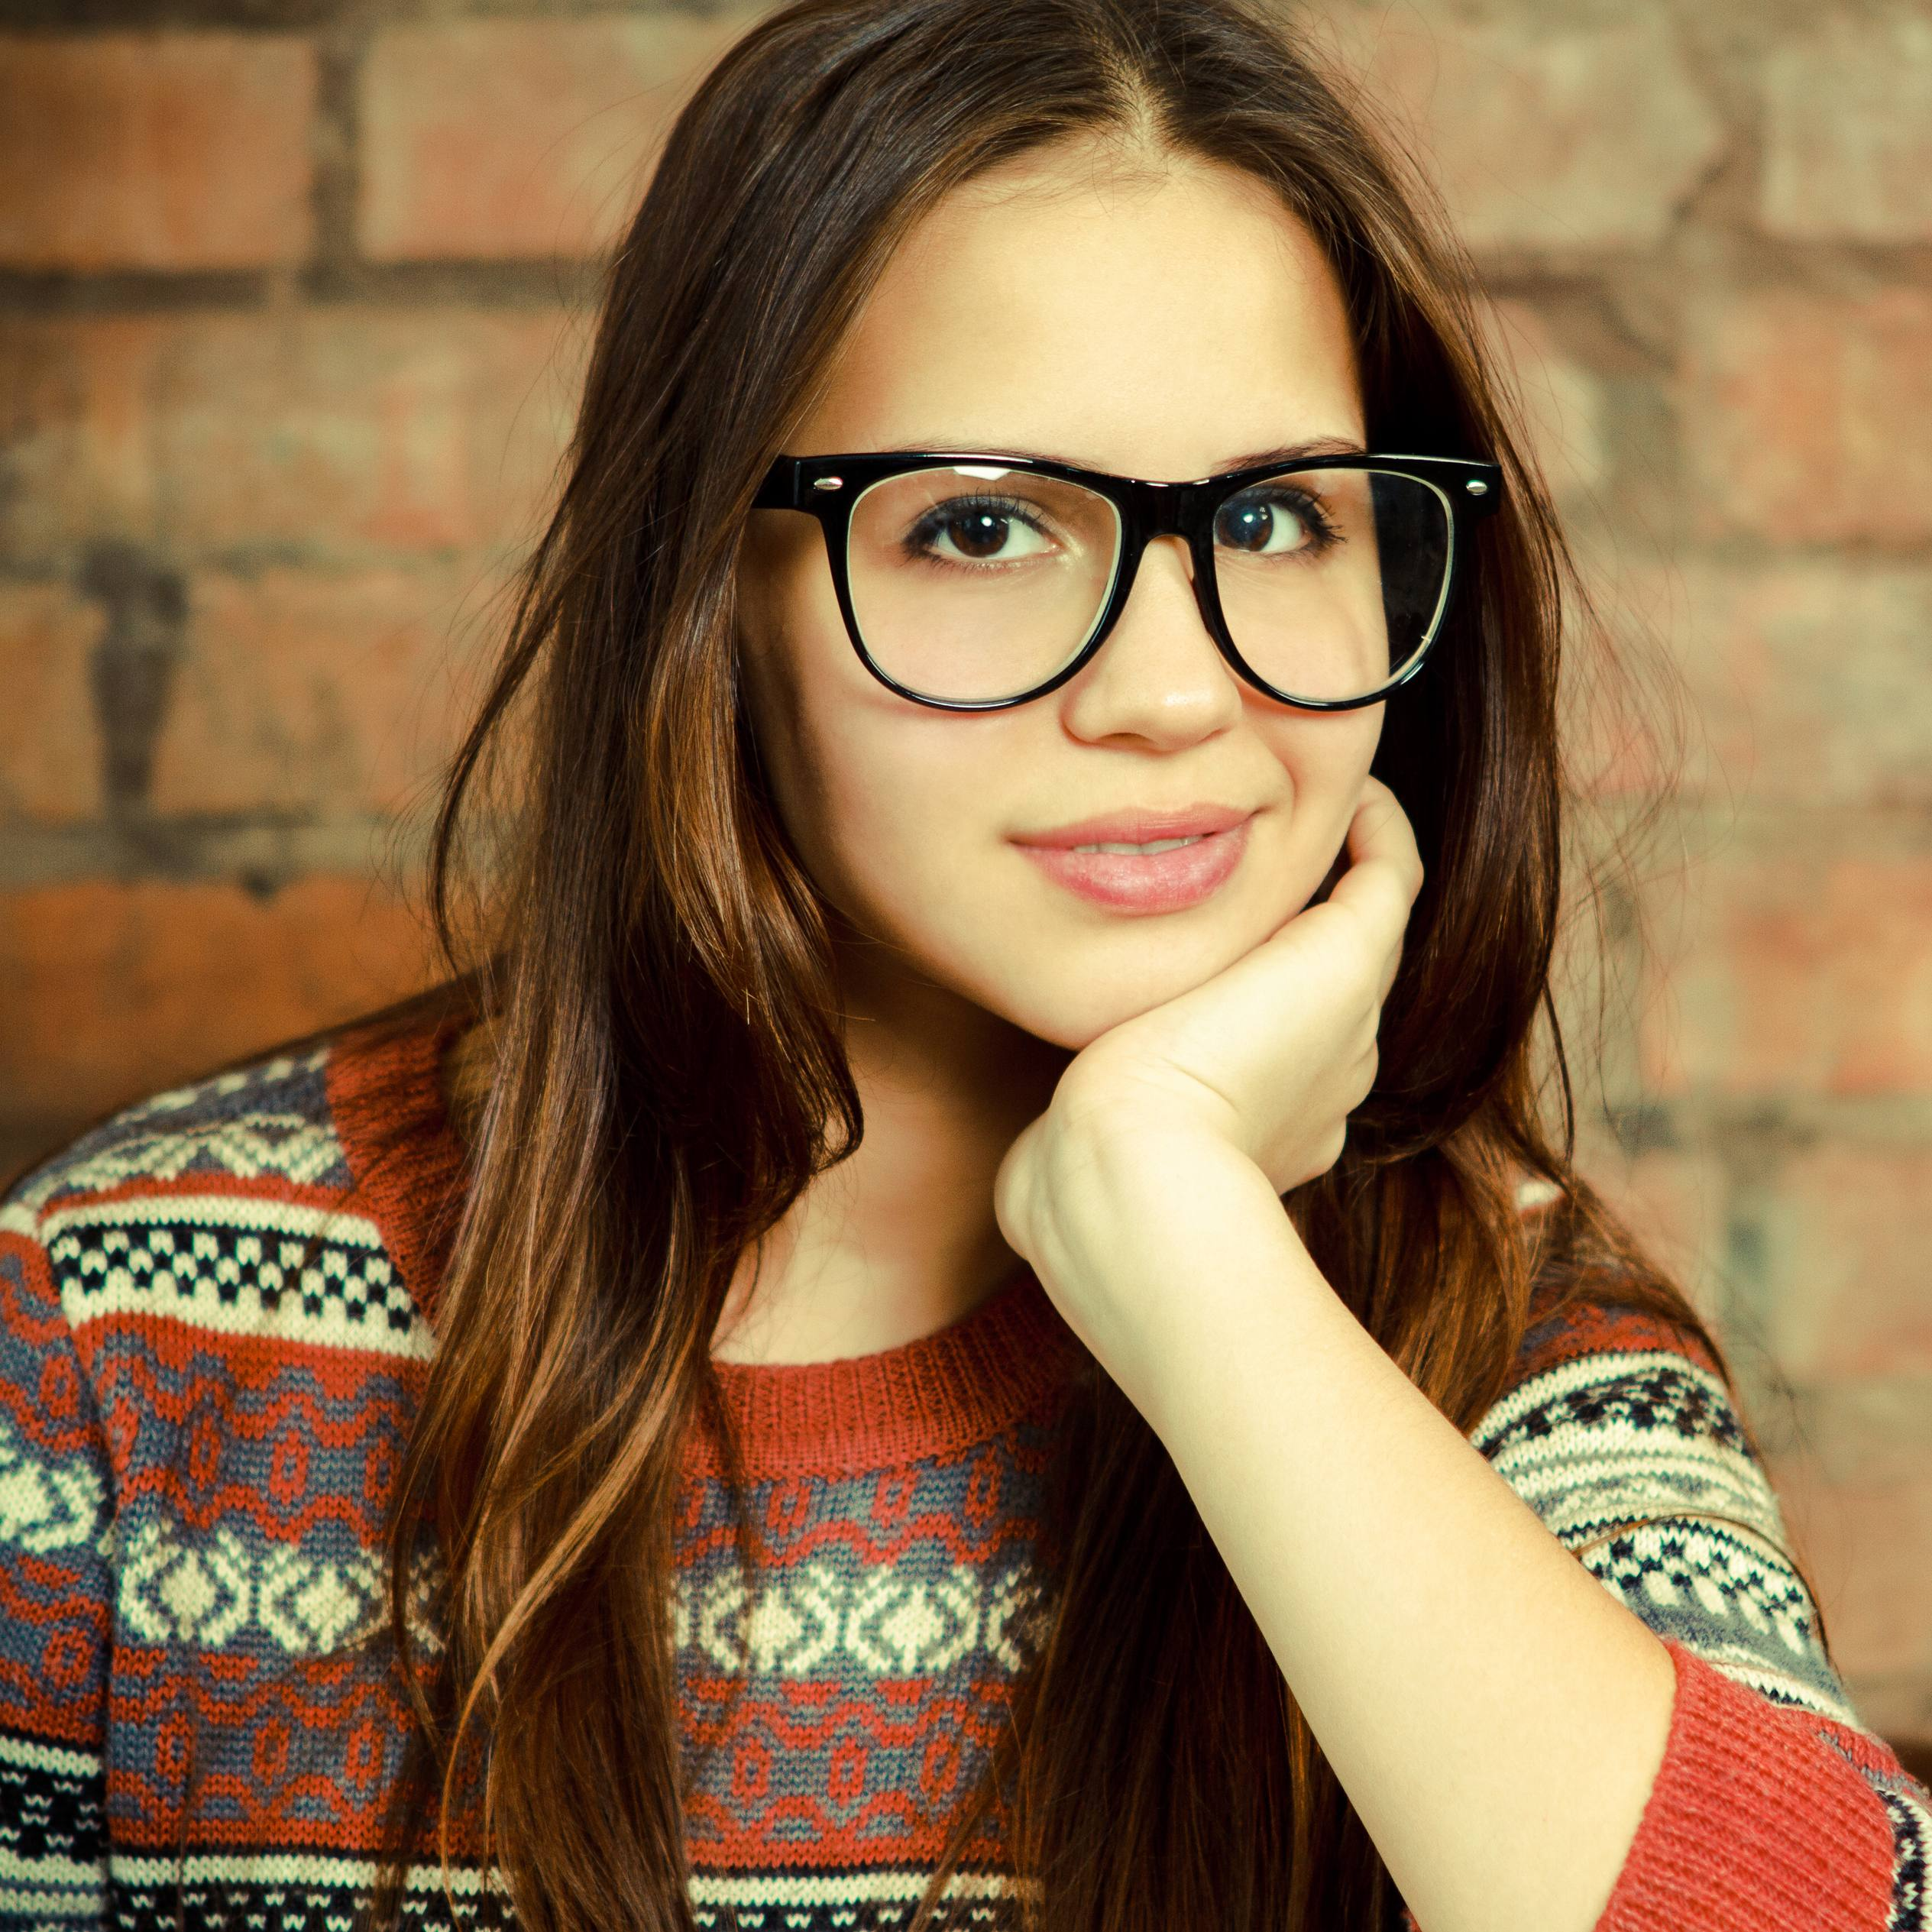 a close-up of a smiling teenage girl wearing large glasses